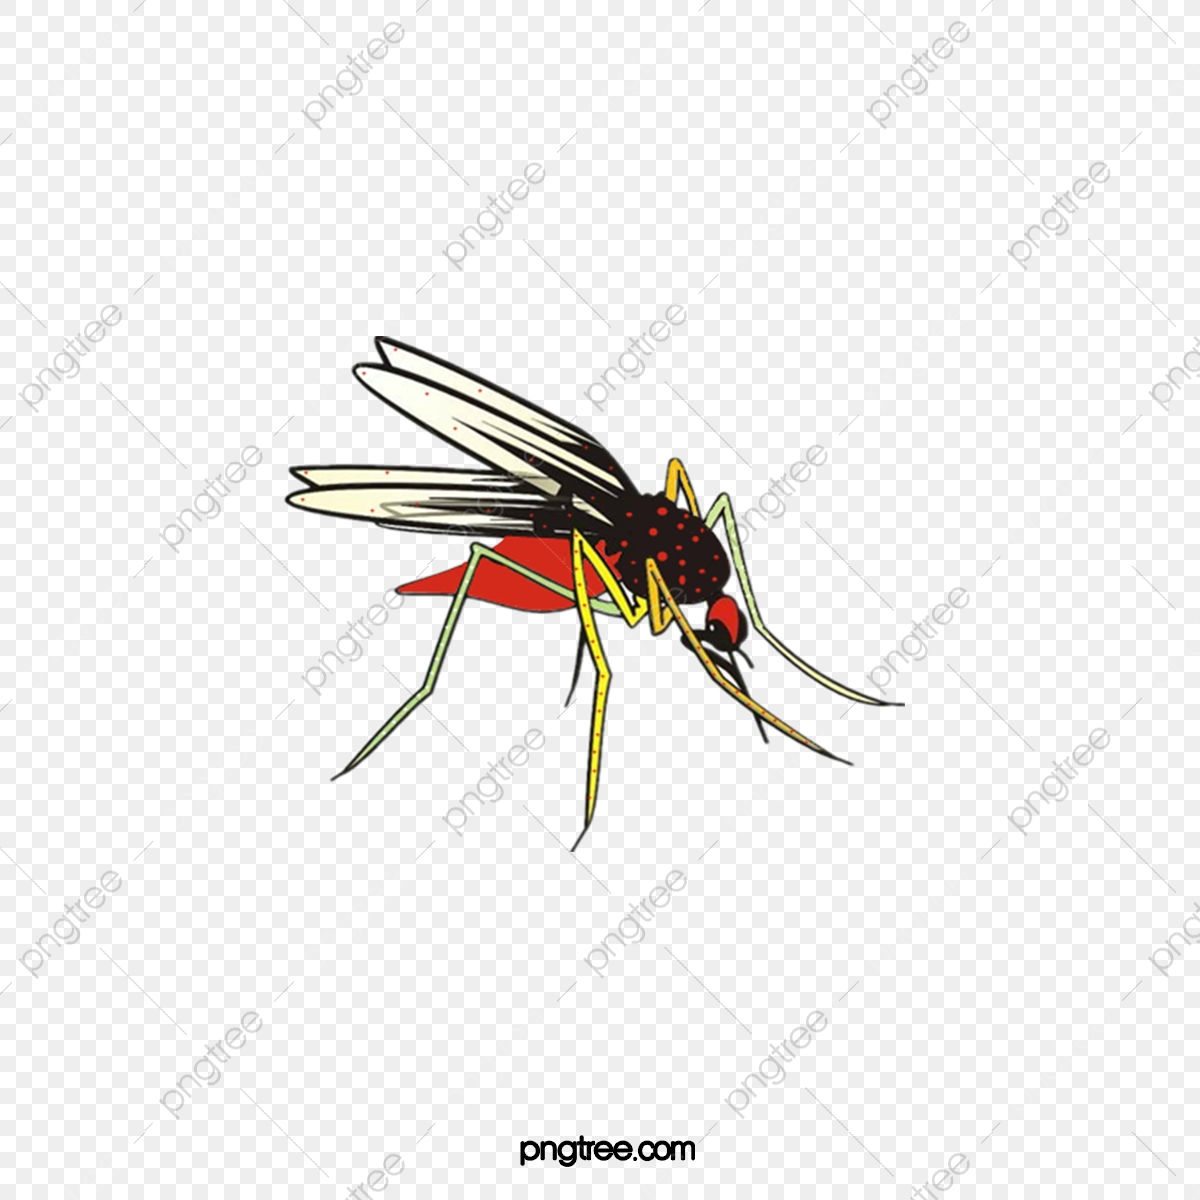 Cartoon png transparent . Mosquito clipart file